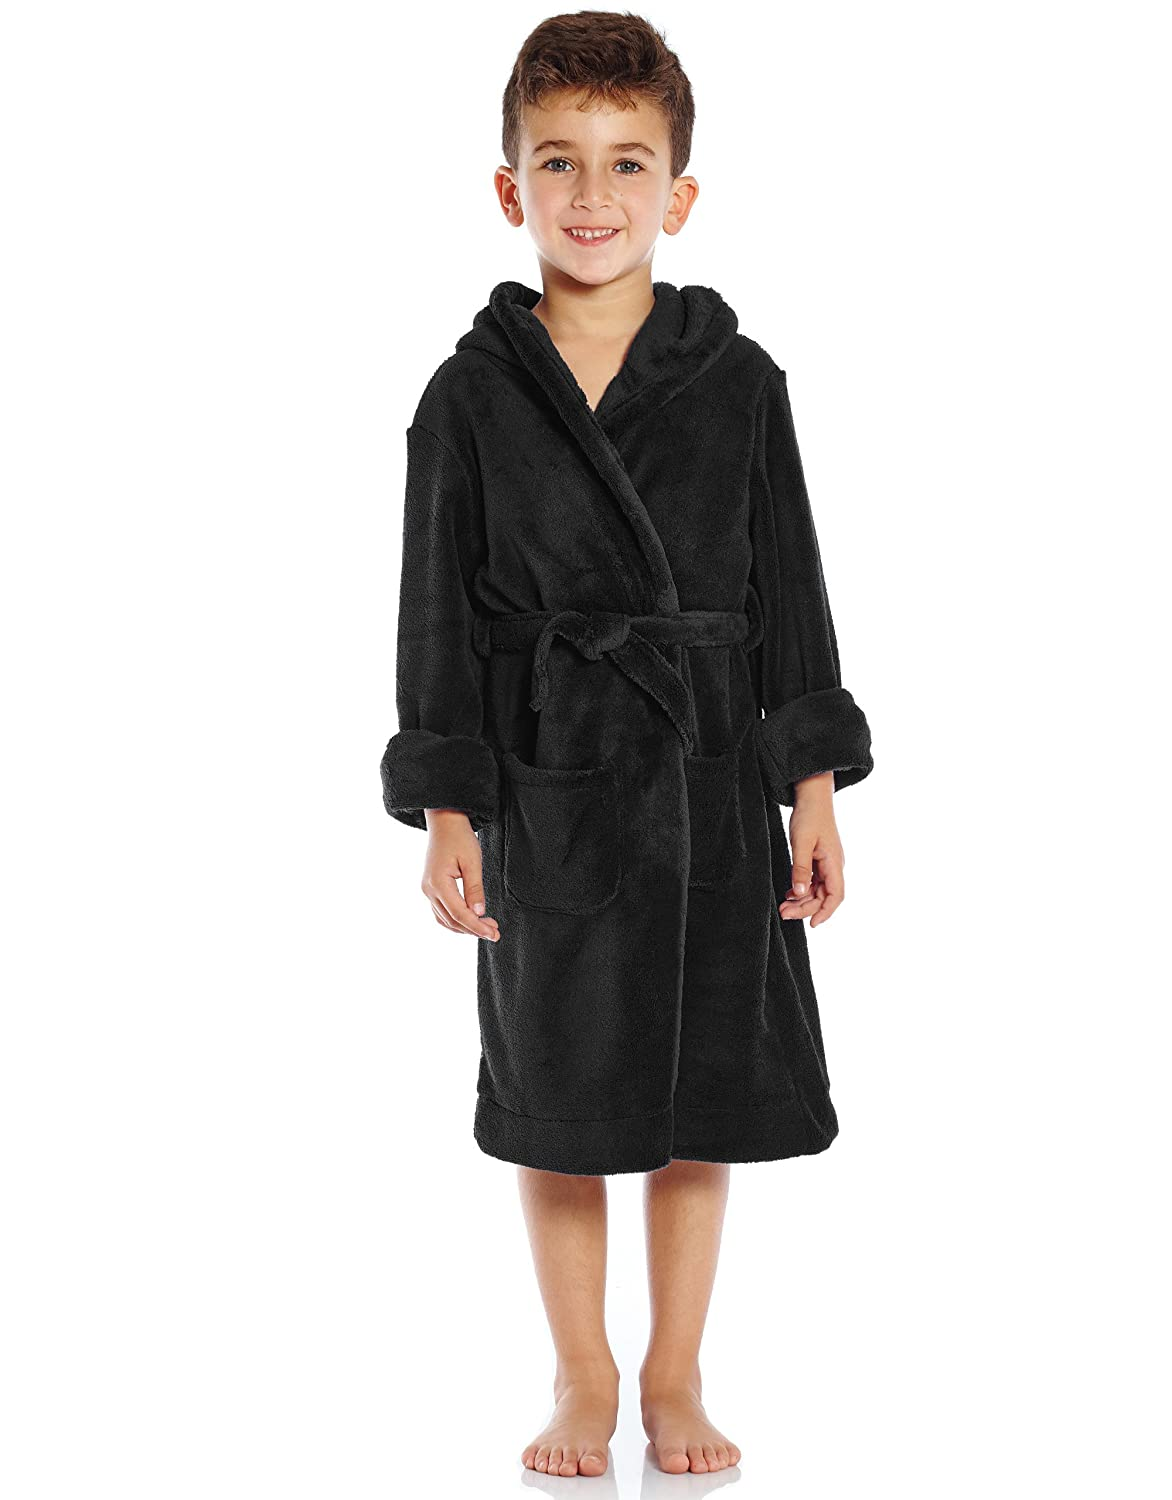 9a9a9d5121 Amazon.com  Leveret Kids Robe Boys Girls Solid Hooded Fleece Sleep Robe  Bathrobe (2 Toddler-14 Years) Variety of Colors  Clothing